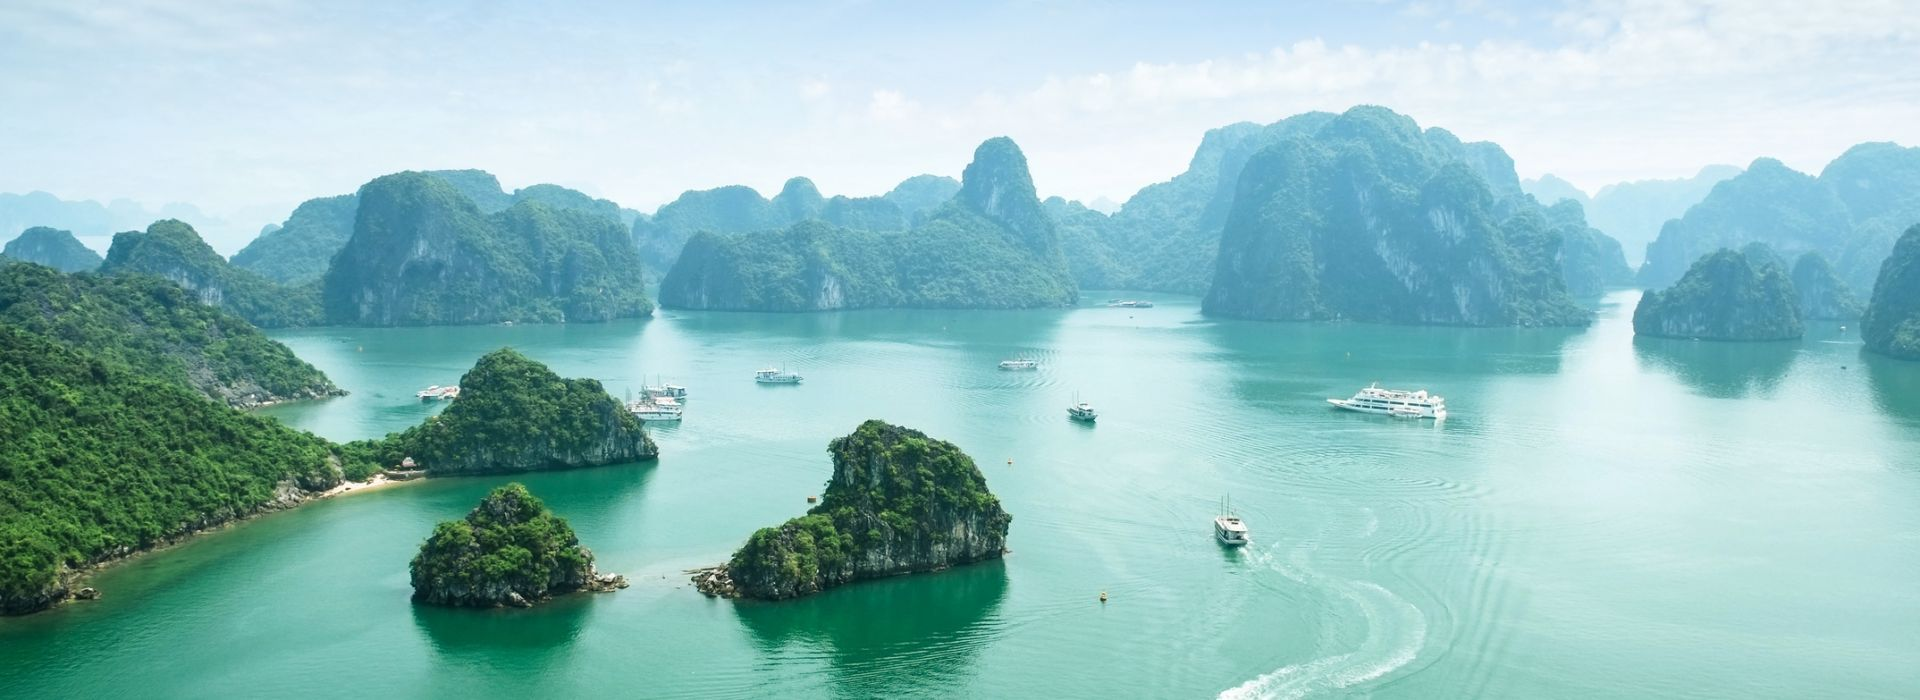 National parks Tours in Halong Bay